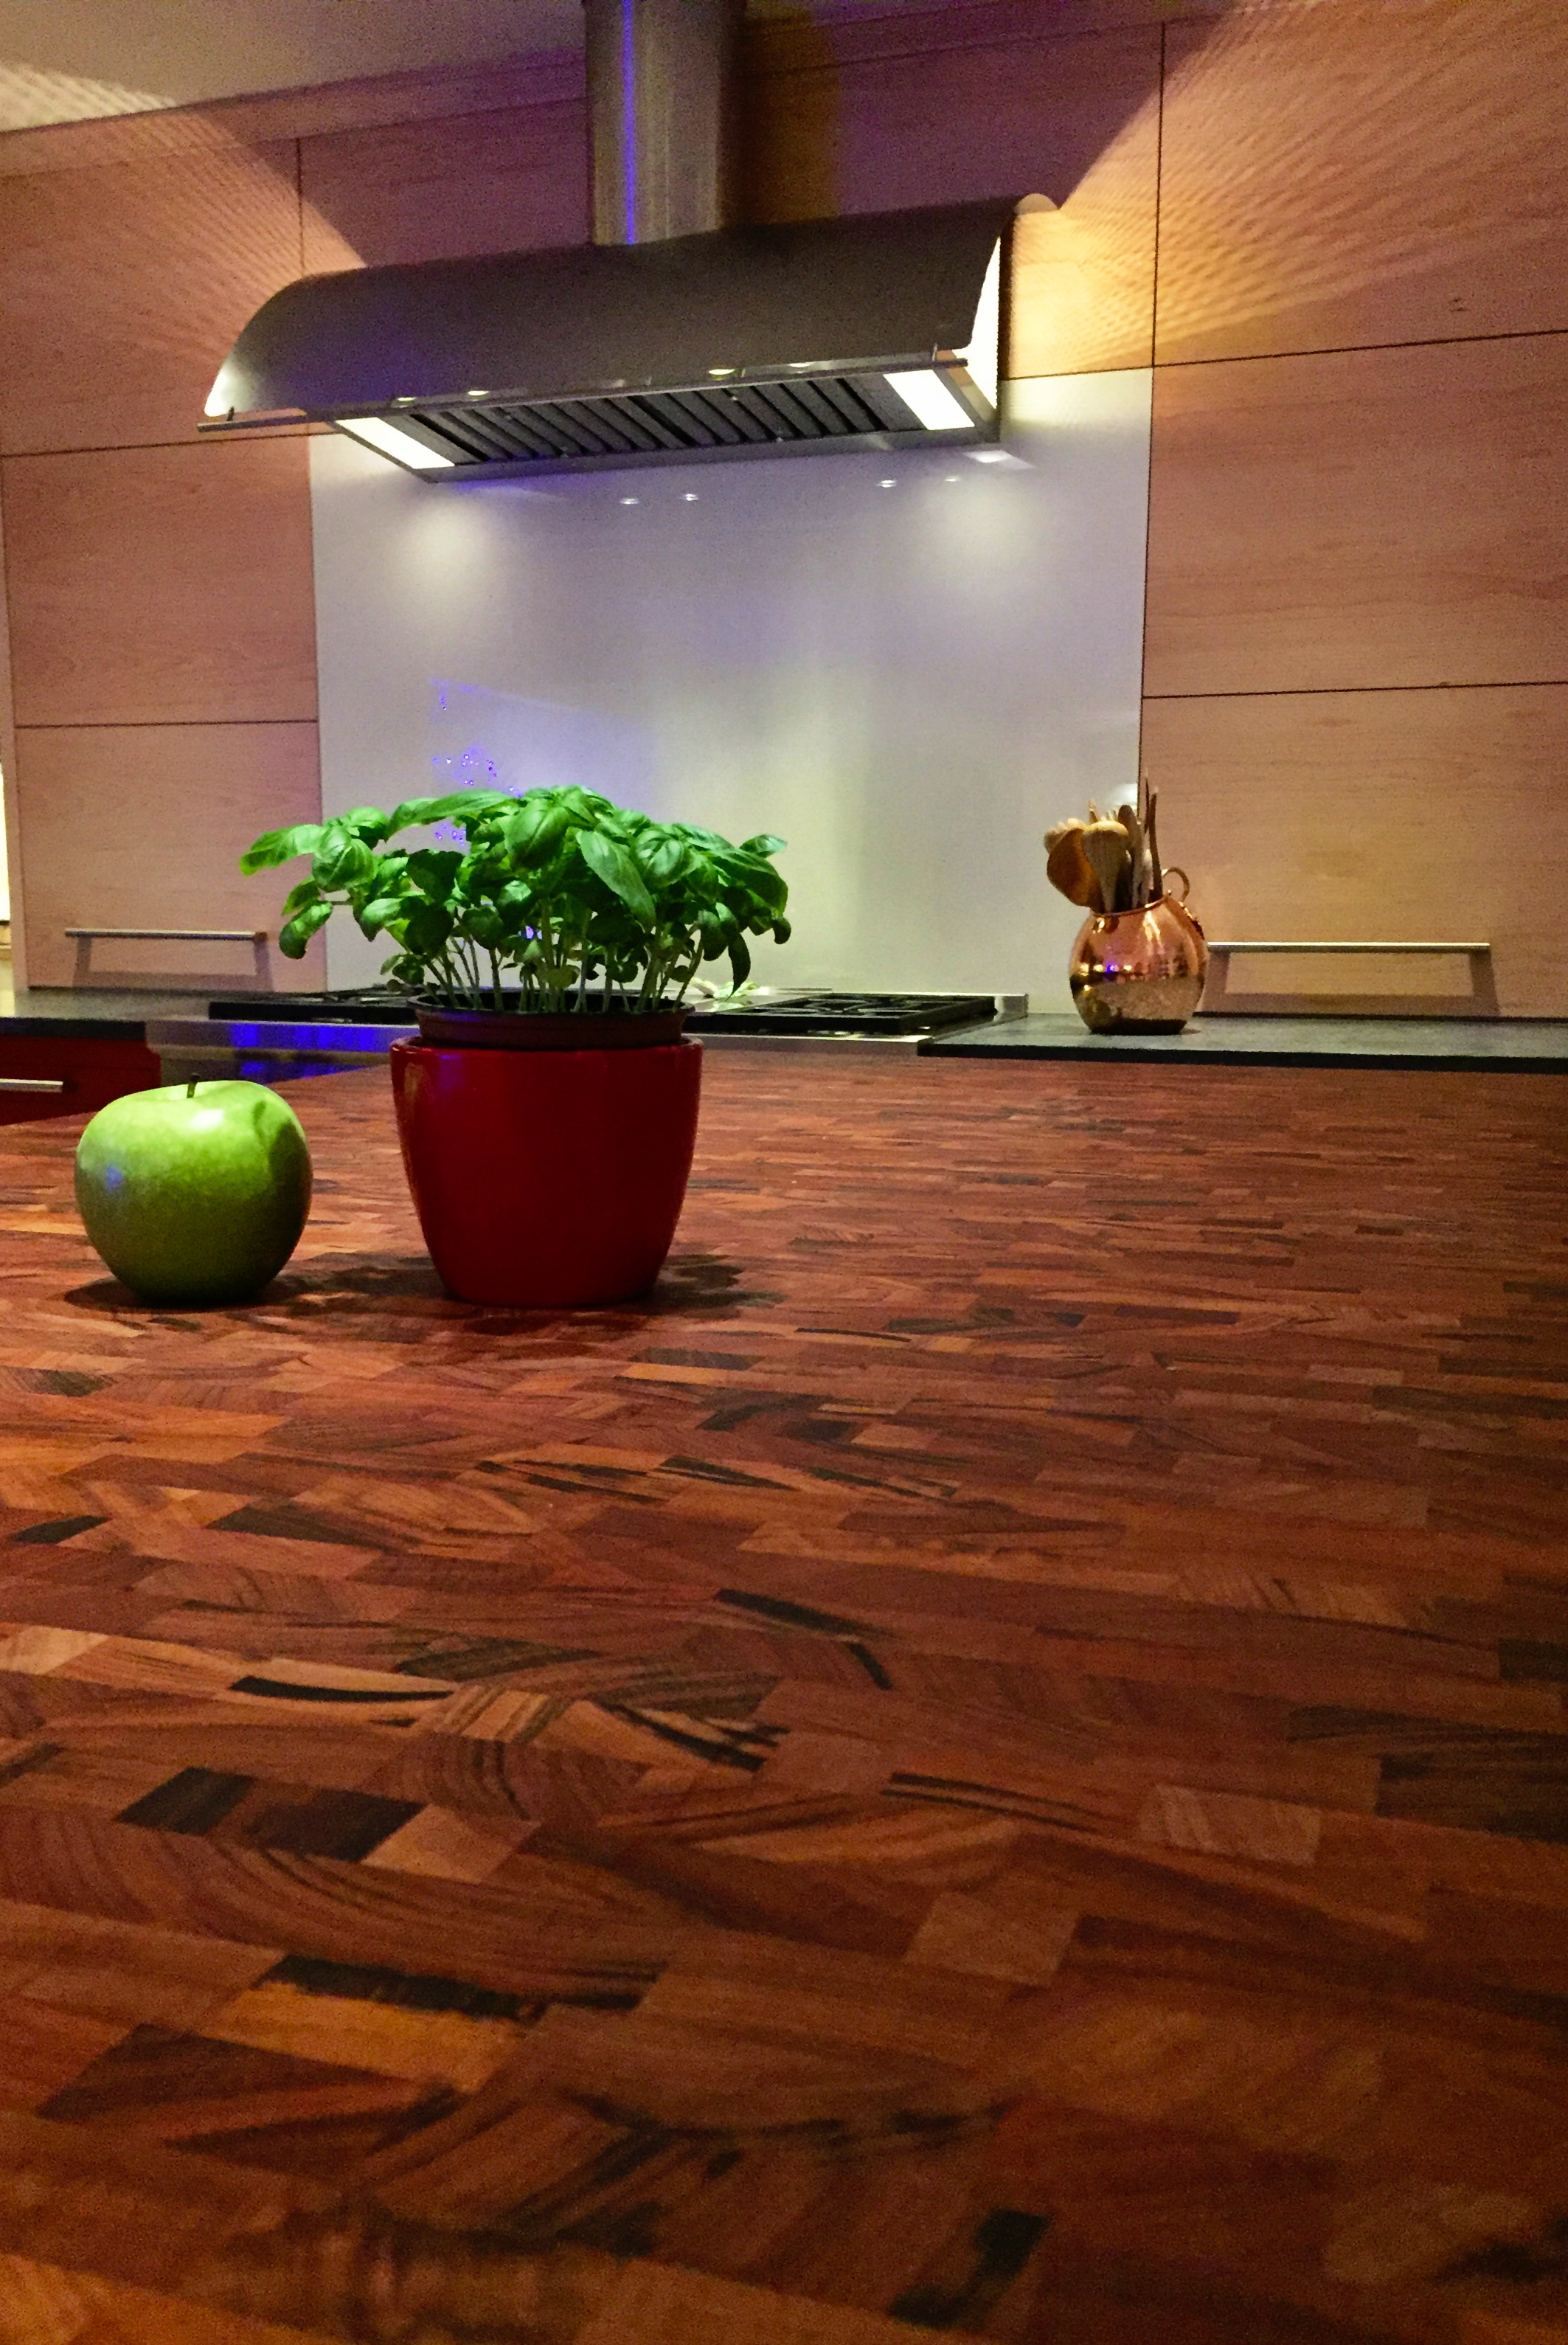 Large maple with wenge butcher block countertop in pennsylvania - Large Maple With Wenge Butcher Block Countertop In Pennsylvania Tigerwood Butcher Block Countertops Download